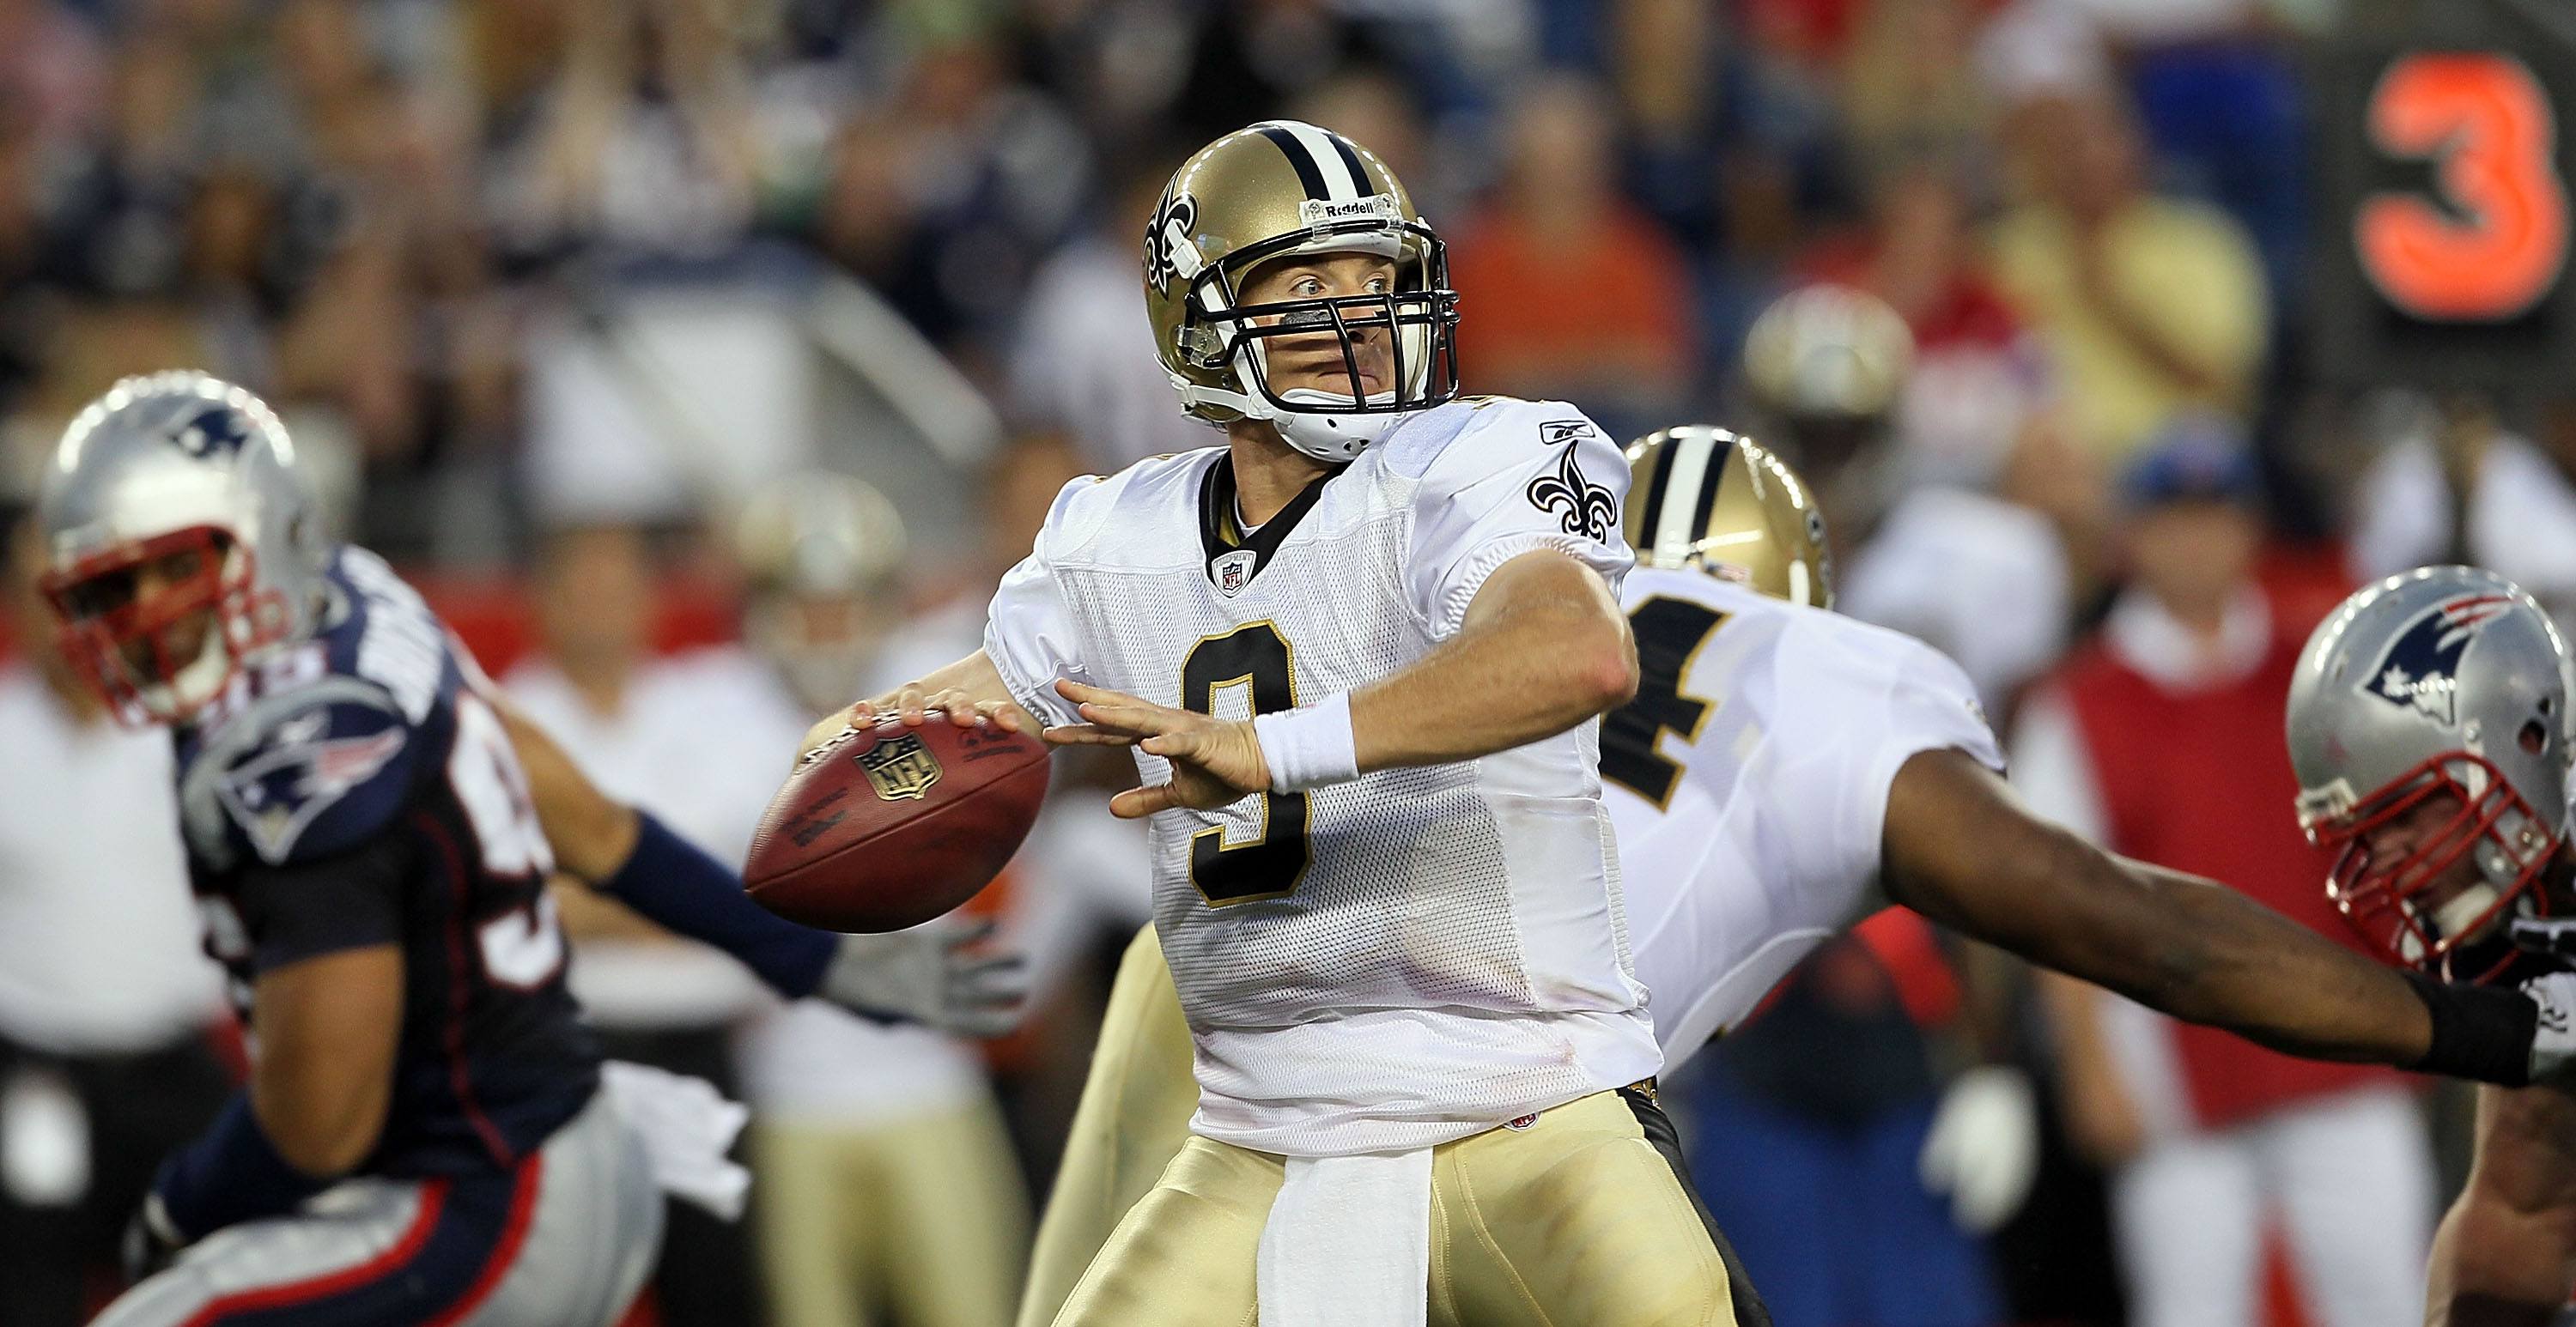 The King of New Orleans will have to take a back seat to Favre on Opening Day